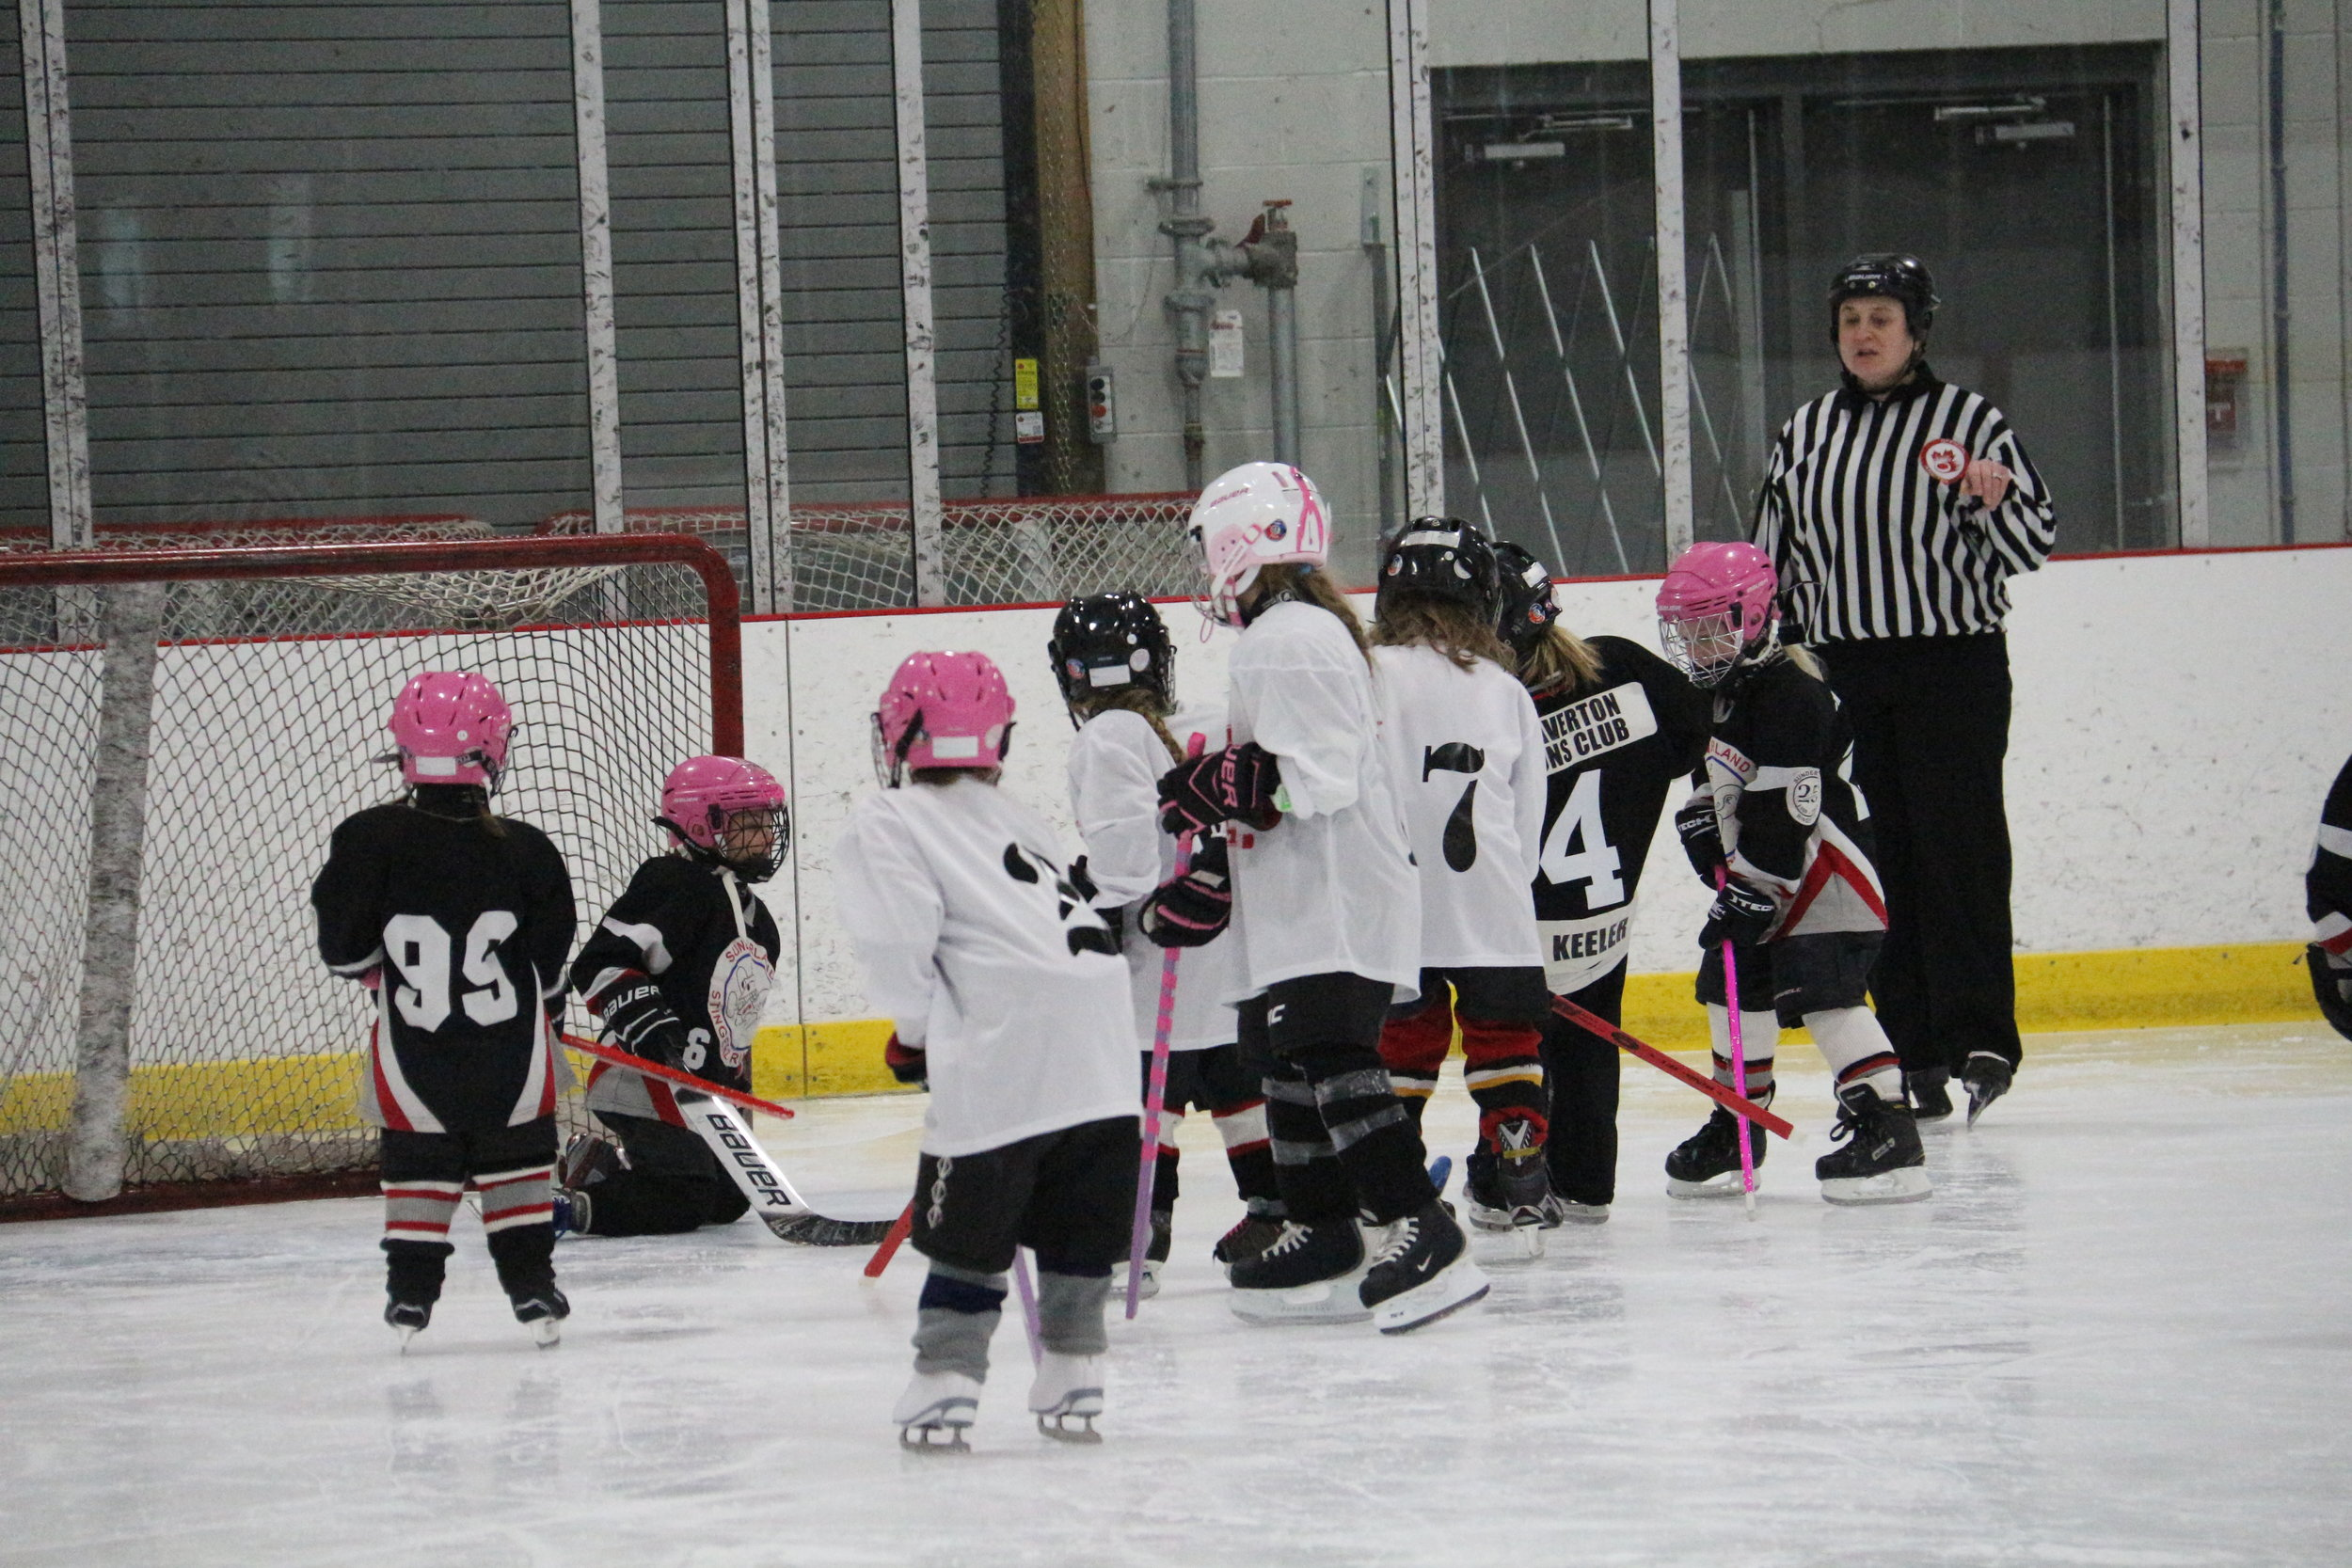 Learn to Play - Want to try ringette without the commitment of a full season of competitive sport? Join us starting in September for Learn to Play sessions, where you'll be able to try a great new sport!Learn more